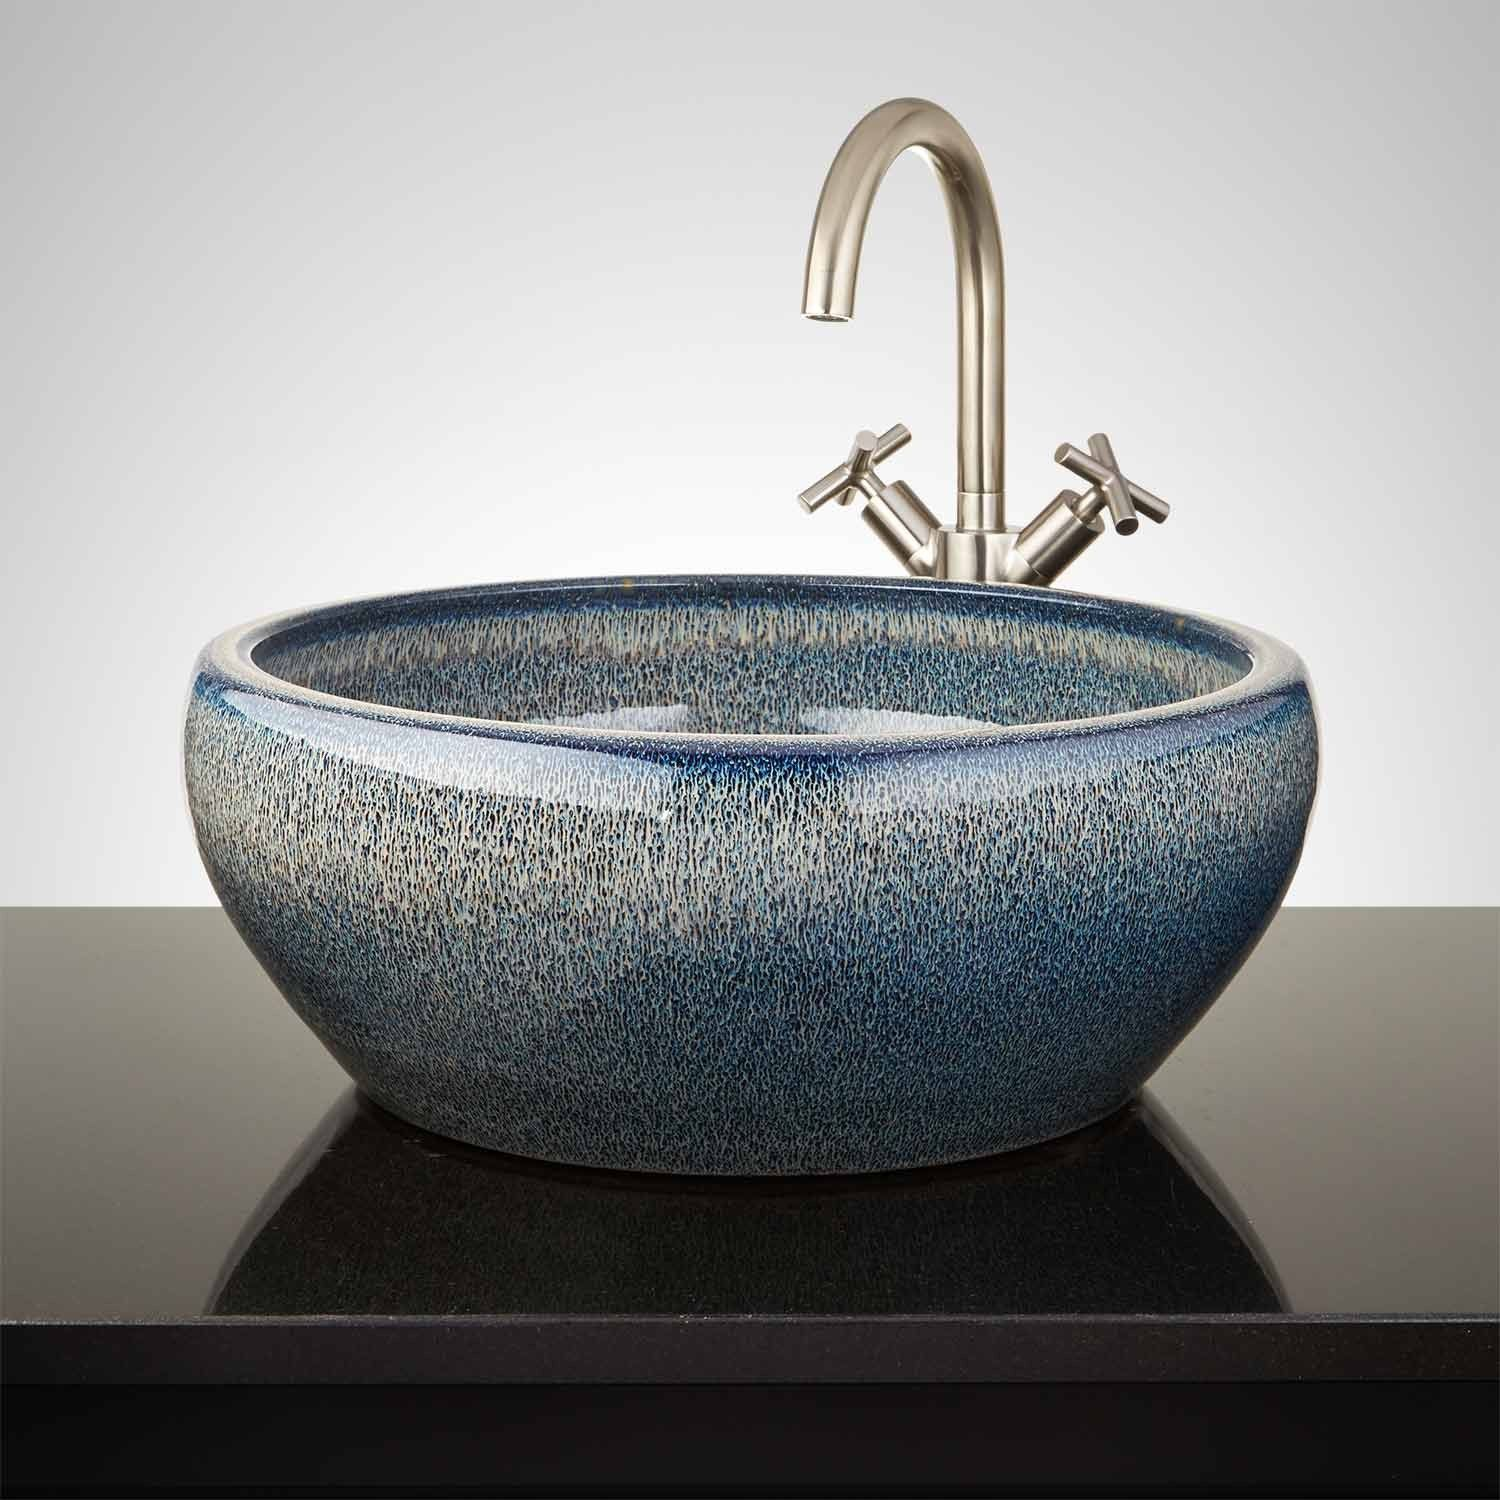 Carrasco Hand Glazed Vessel Sink Ocean Blue Vessel Sinks